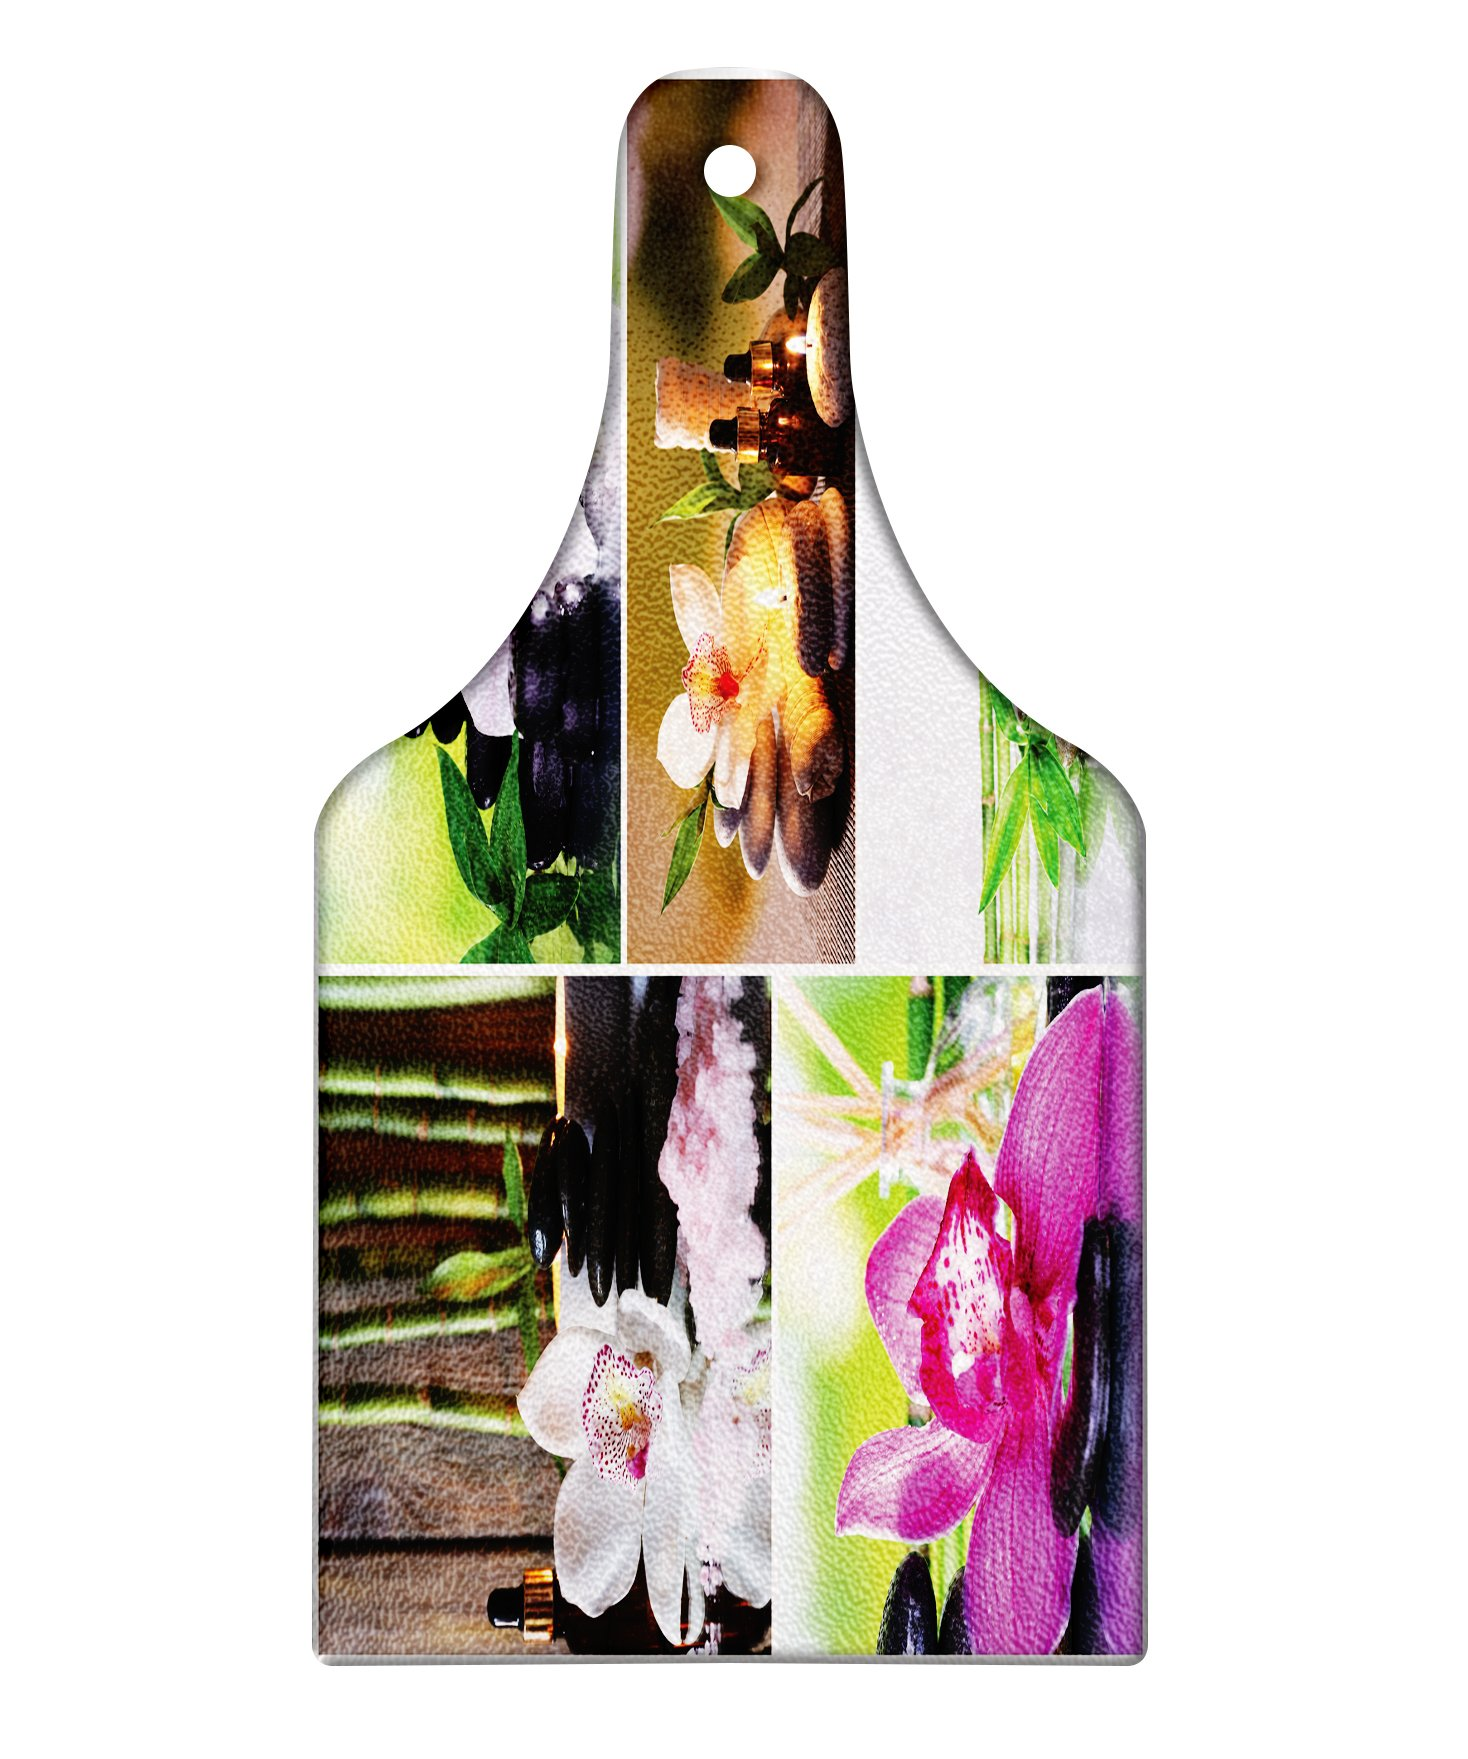 Lunarable Spa Cutting Board, Spa Day Collage with Orchids Stone Pebbles Natural Herbal Oils Body and Mind Treatment, Decorative Tempered Glass Cutting and Serving Board, Wine Bottle Shape, Multicolor